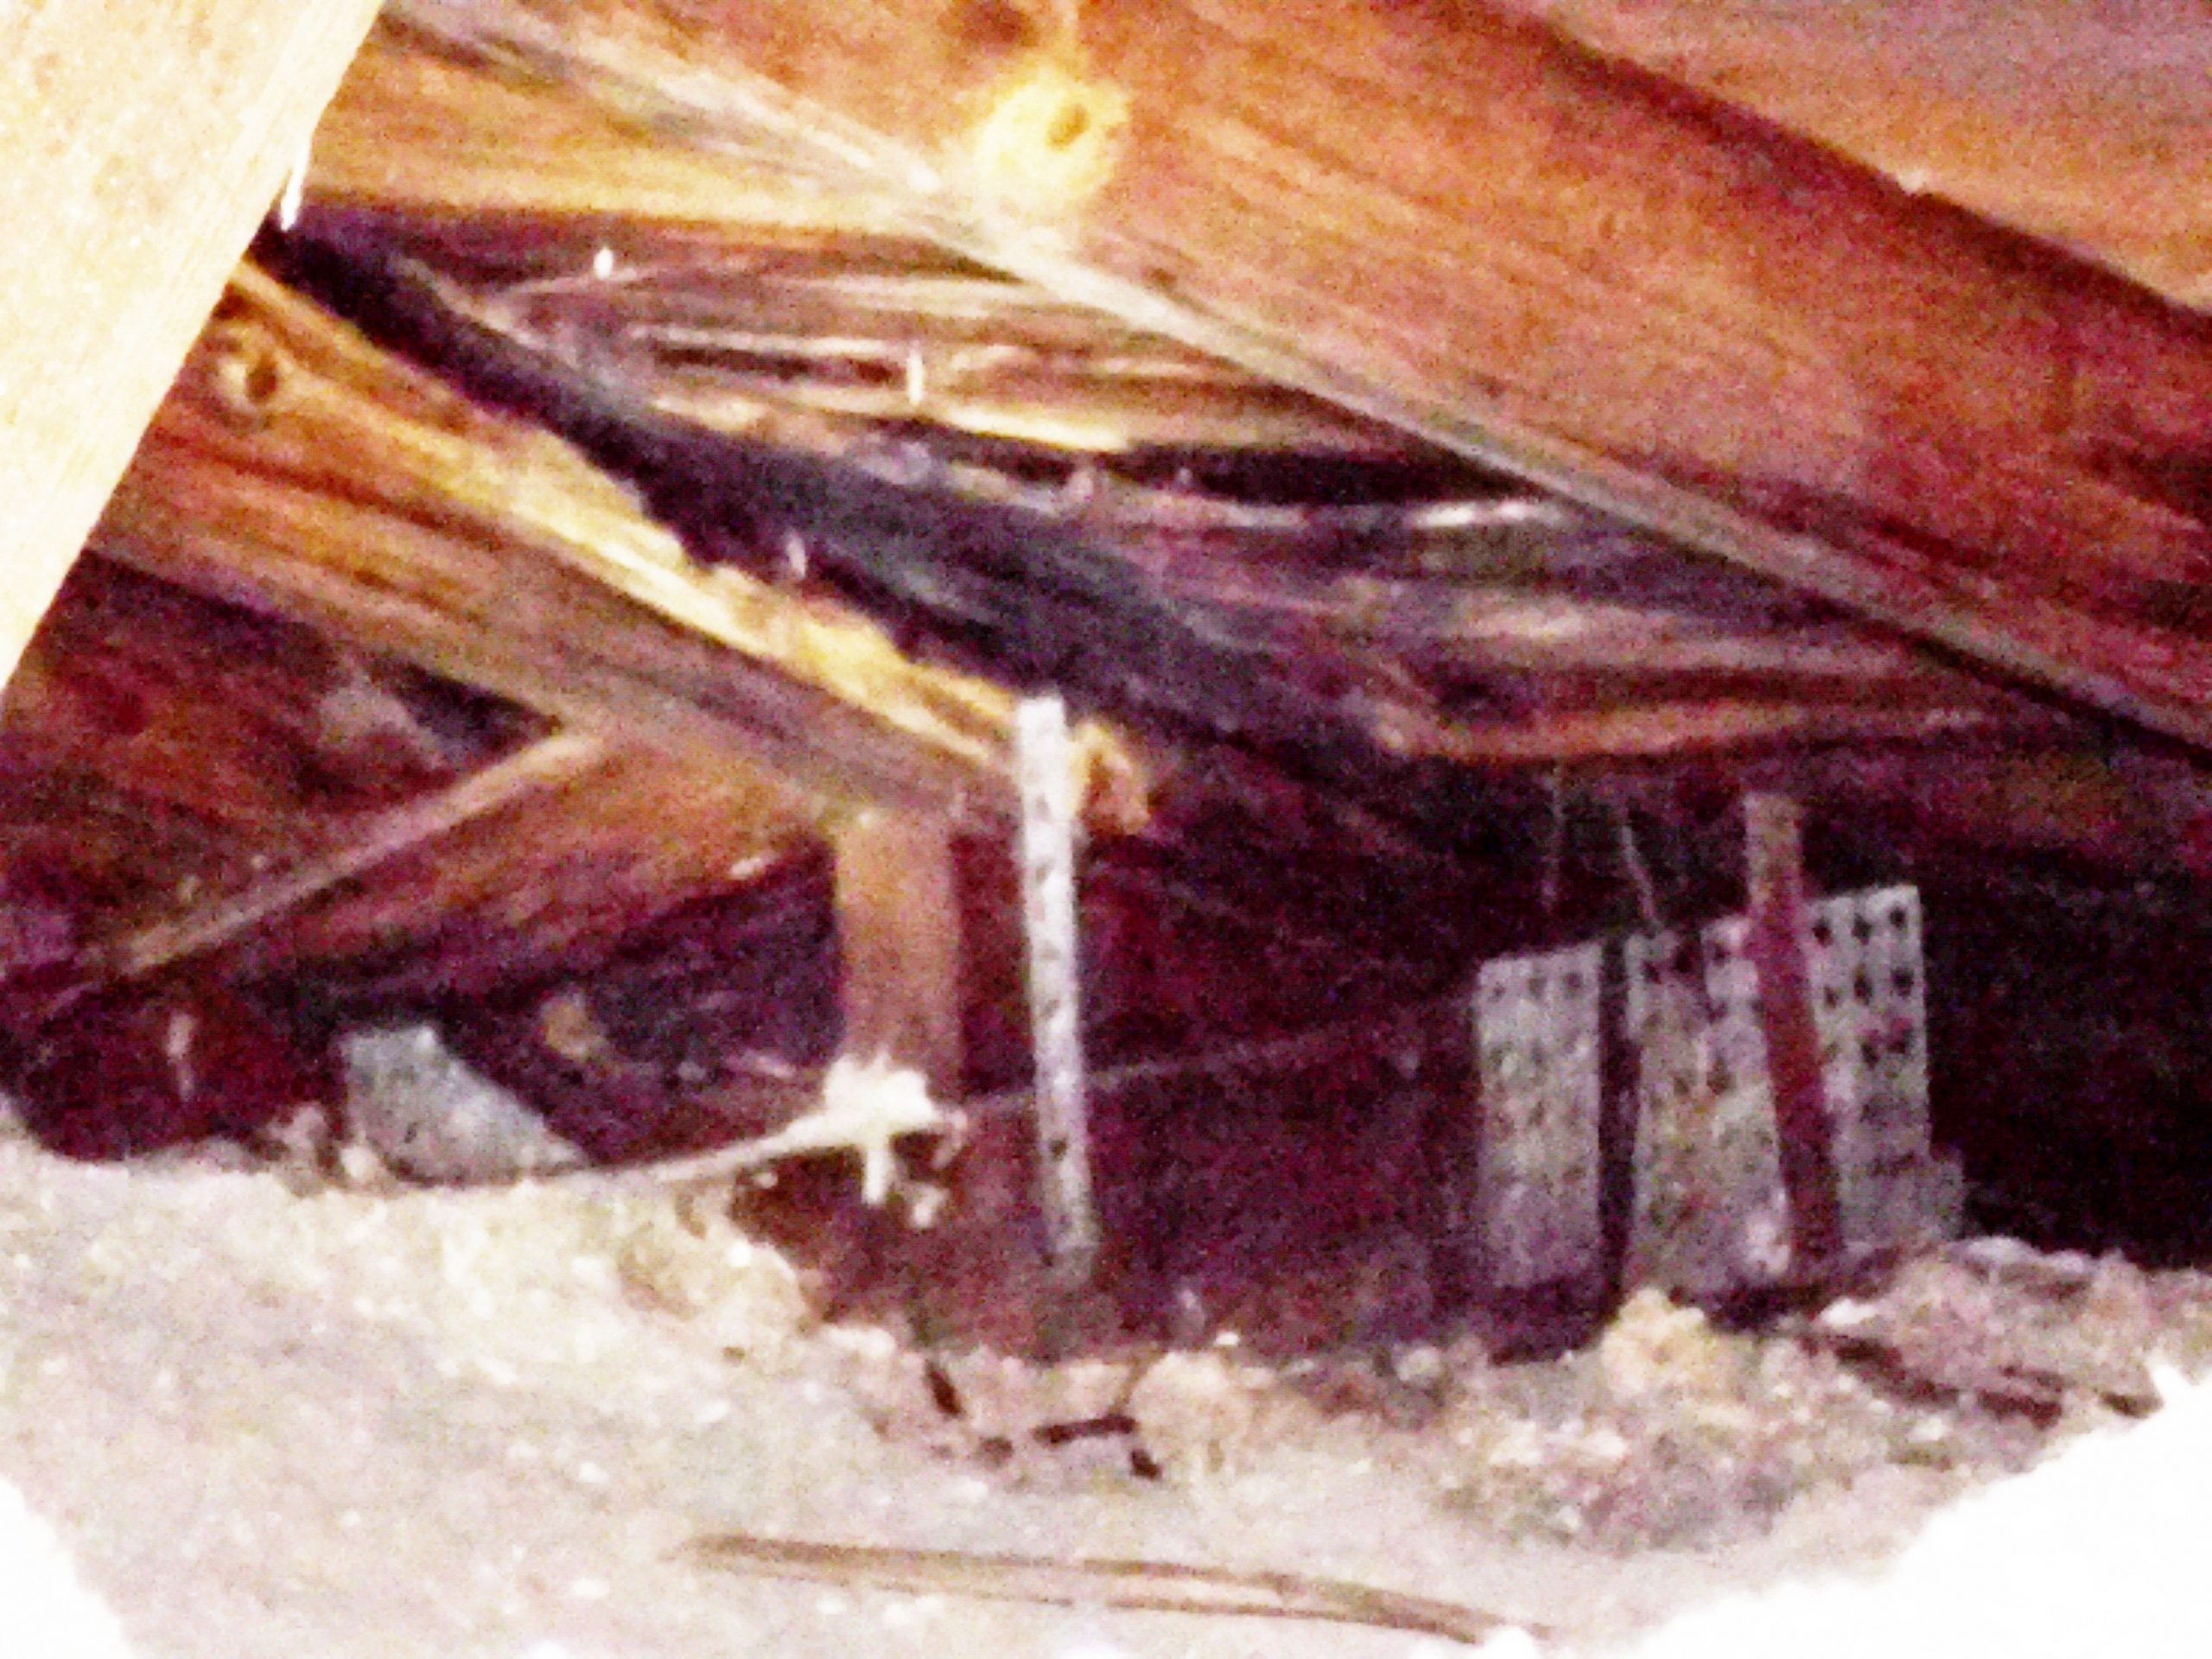 Picture of damaged roof structure and sheathing due to active leak